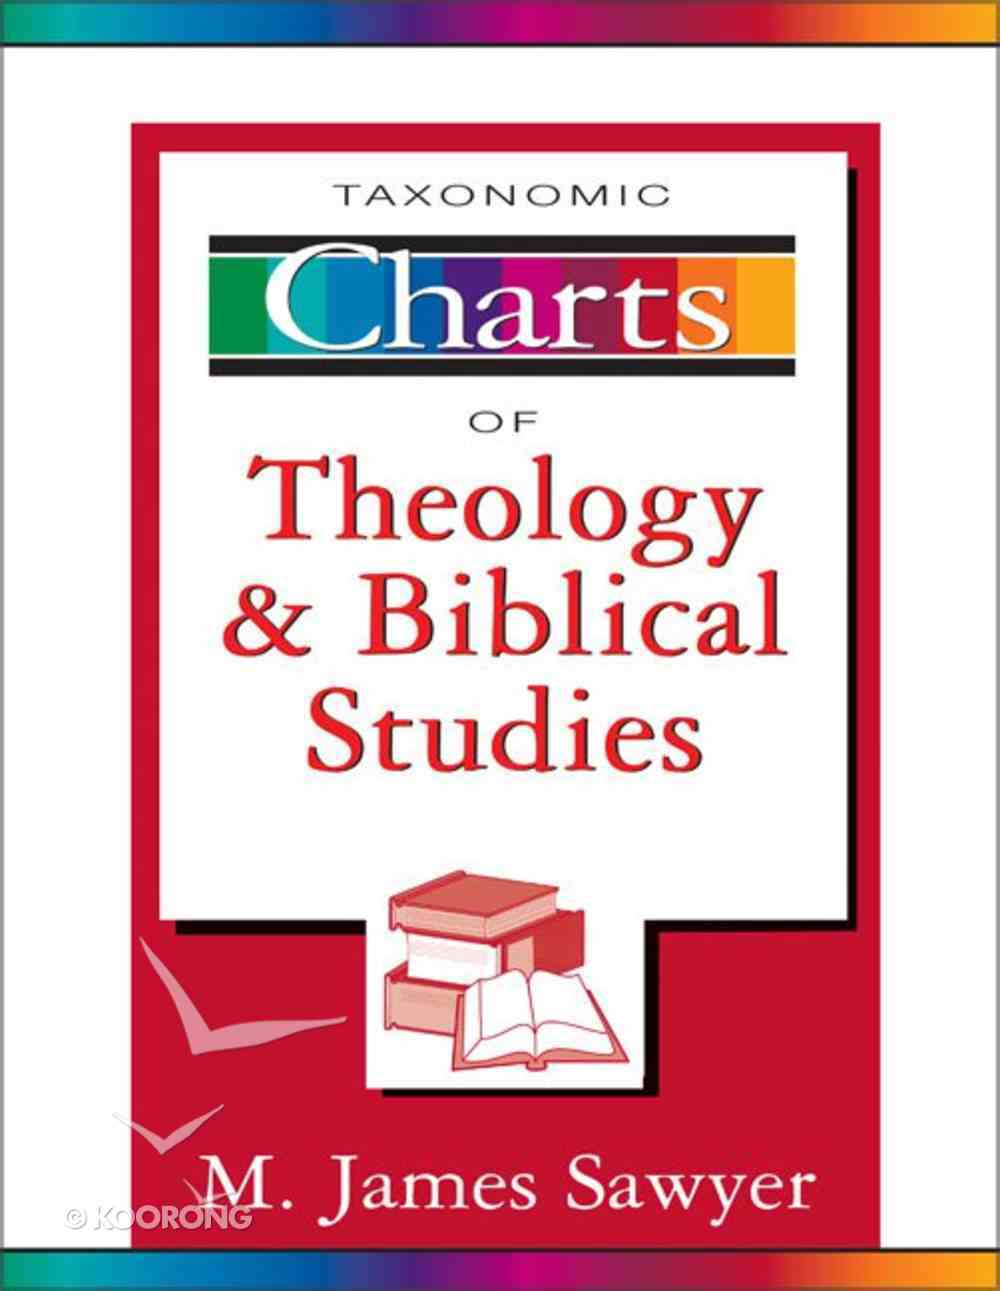 Taxonomic Charts of Theology & Biblical Studies (Zondervan Charts Series) Paperback